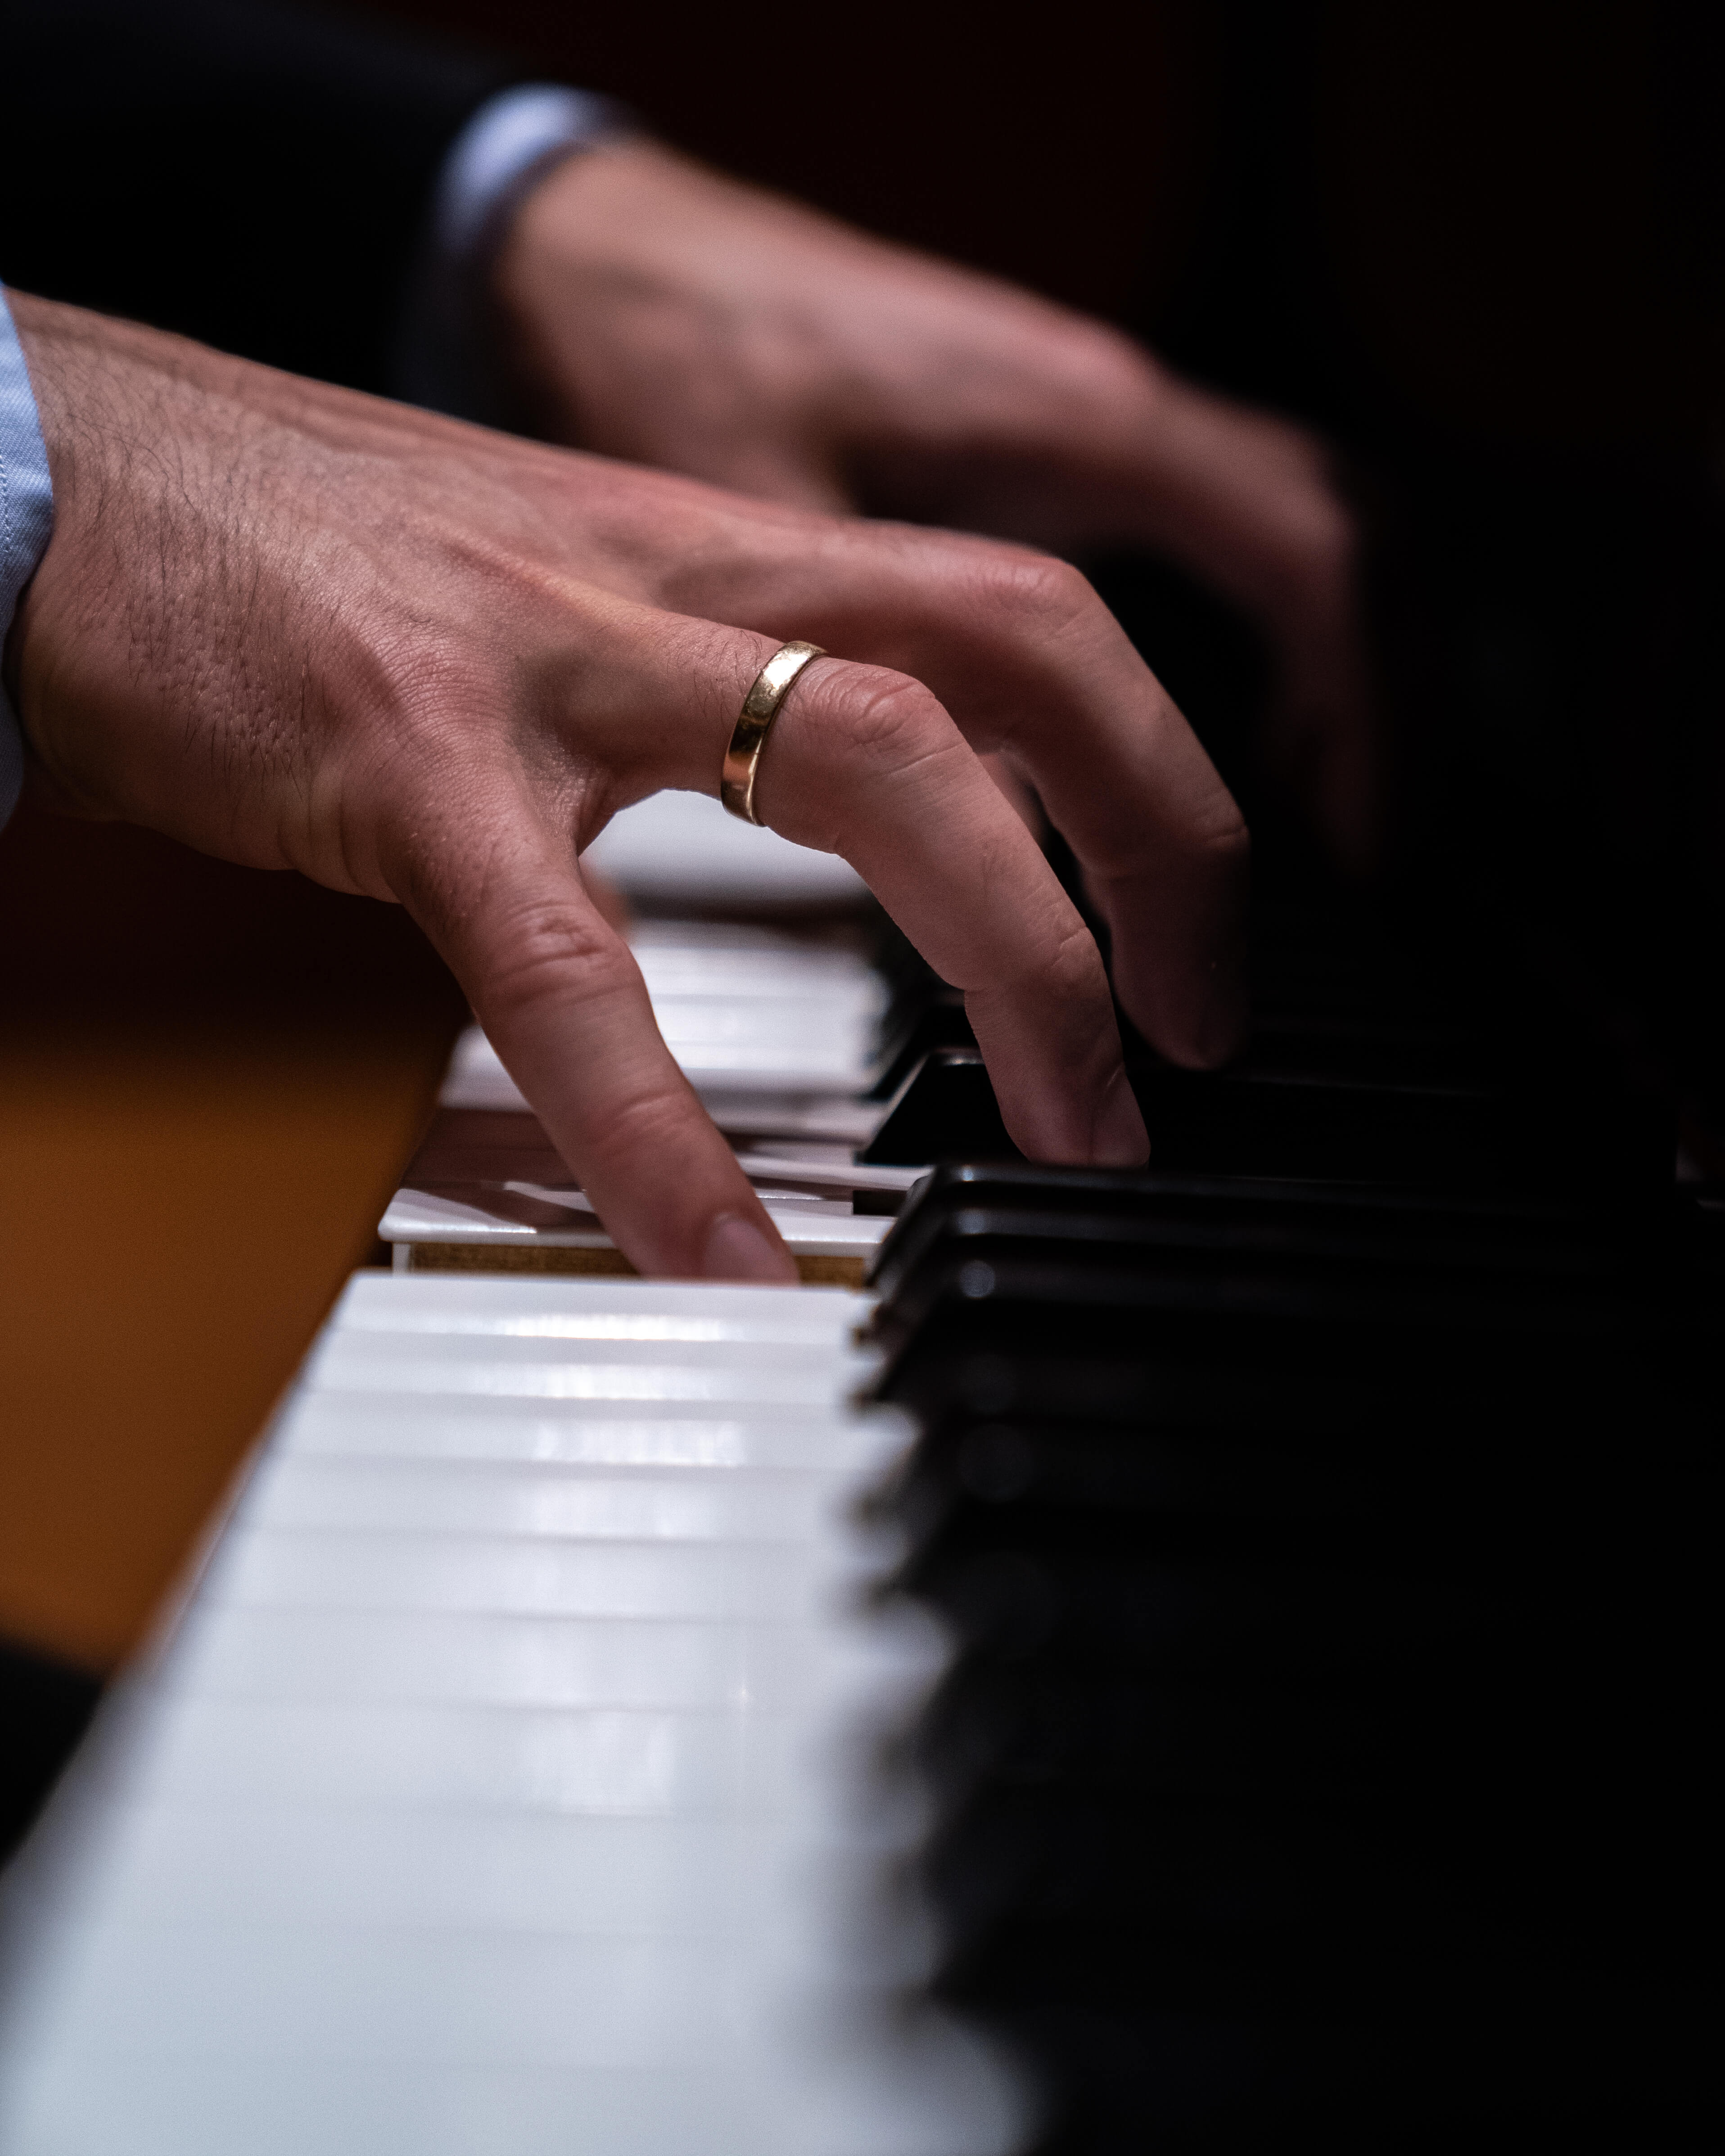 Hands with a ring playing the piano.